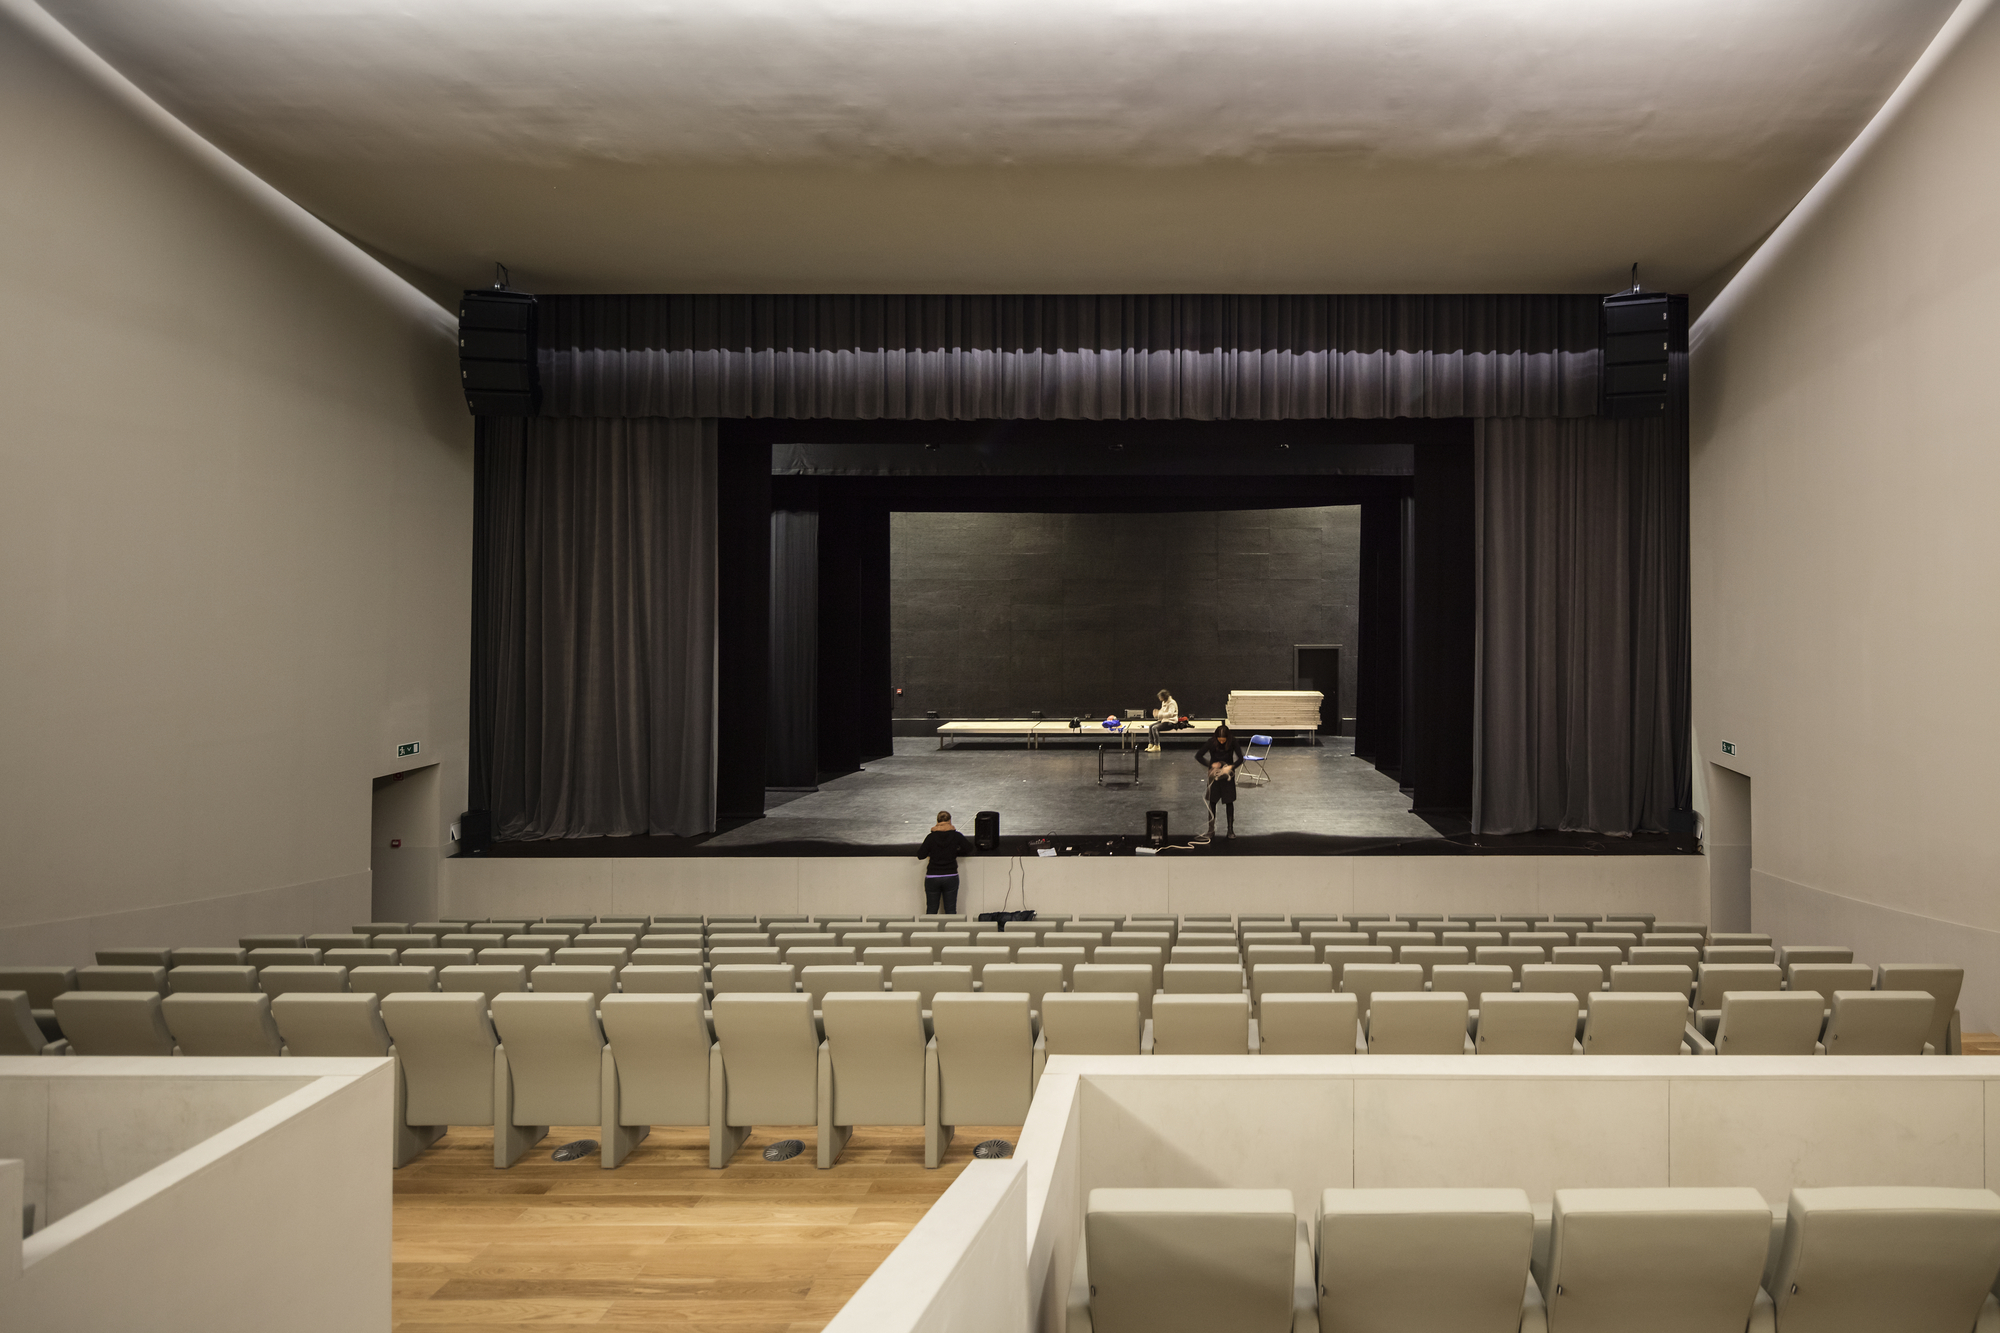 auditorium acoustics Auditorium acoustics 104 speakers make sound, acoustics clean it up when working with an acoustician in the design or renovation of a hall it is helpful for all to have an understanding of the basic concepts in auditorium acoustic design.